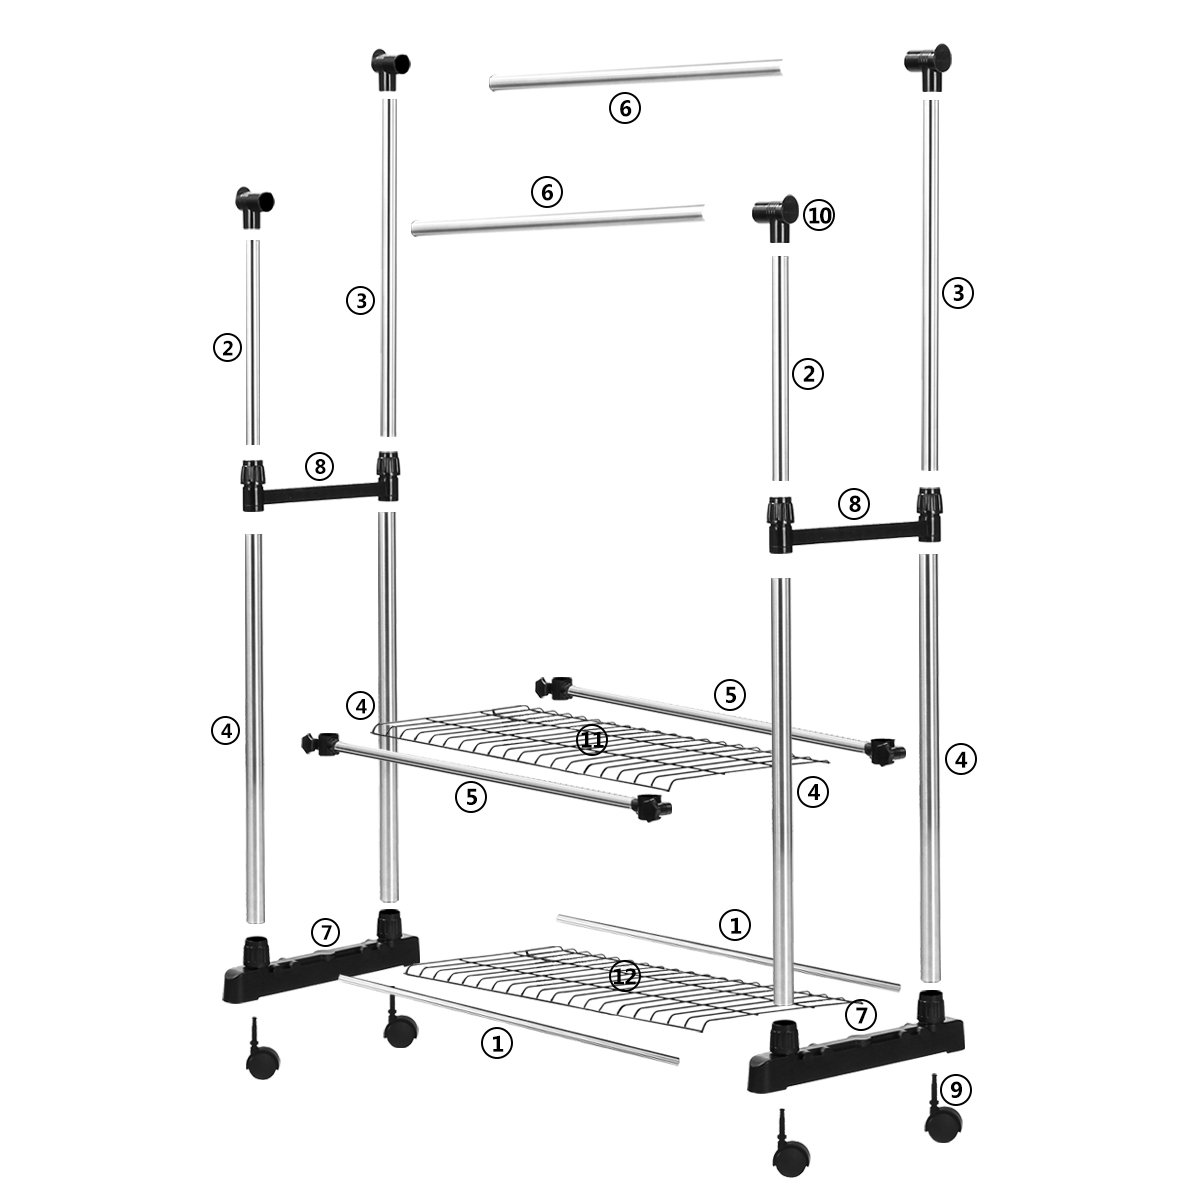 SUNPACE Double Rods Adjustable Rolling Clothes and Garment Rack with Wheels and 2 Shelves on Bottom